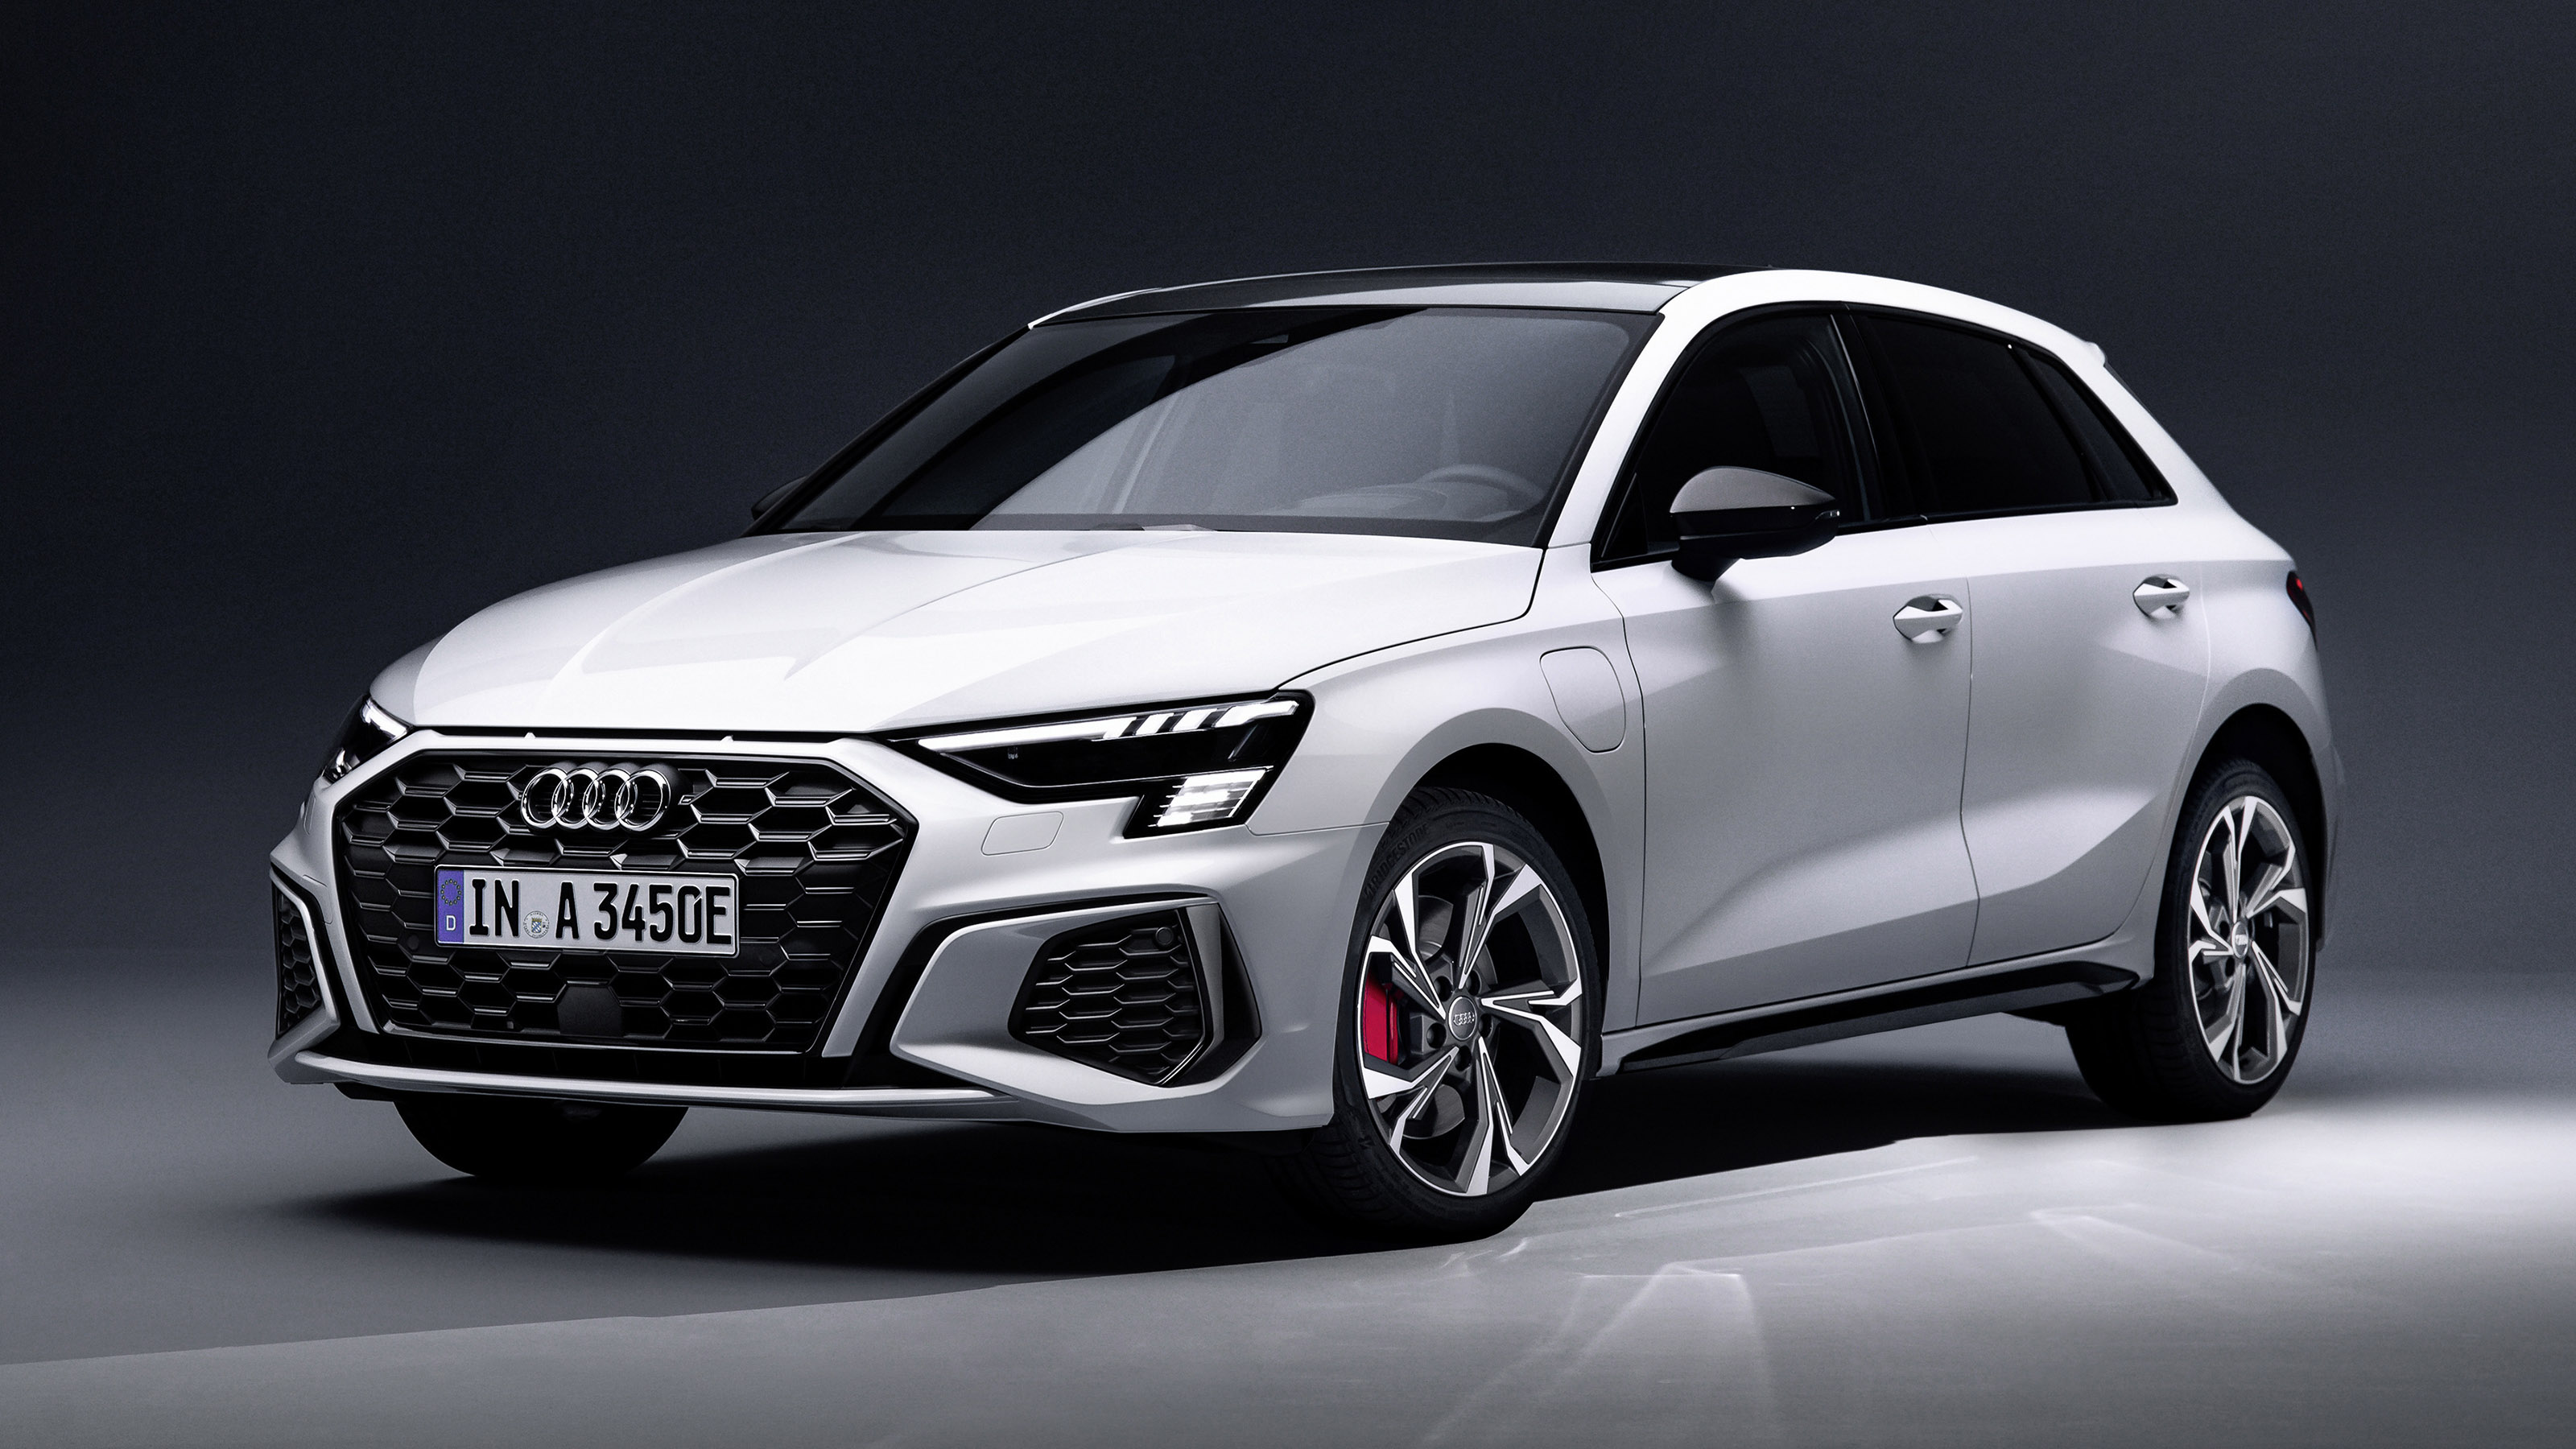 Audi A3 45 TFSI e plug-in hybrid launching in 2021 | Carbuyer